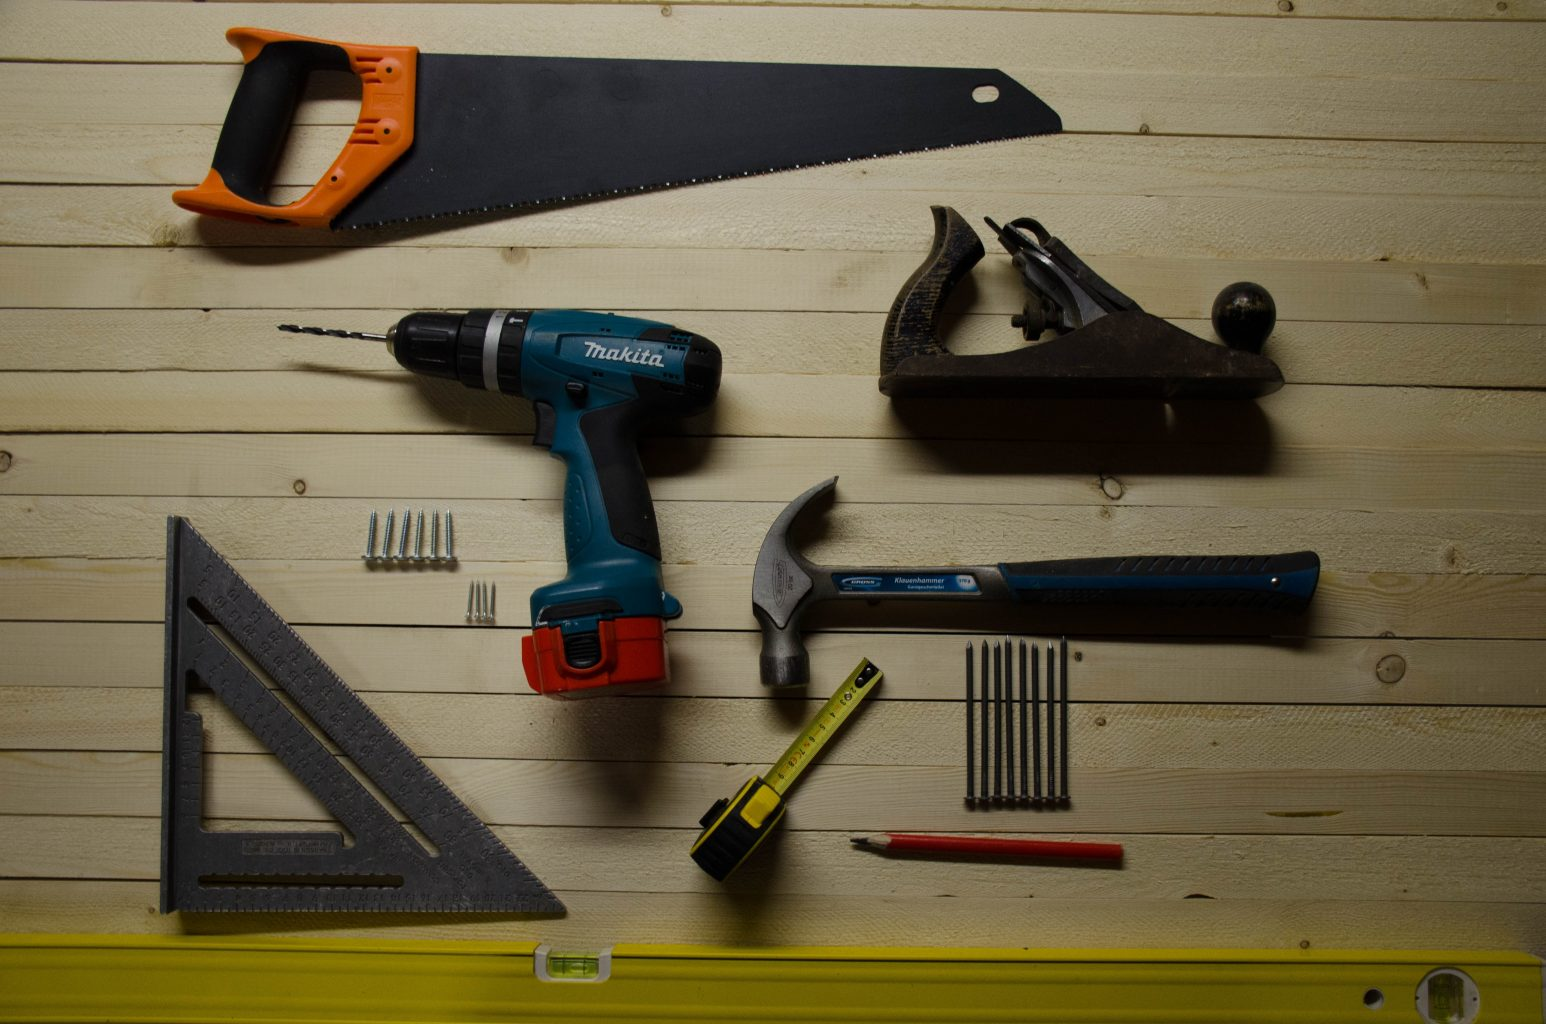 Hand tools Photo by Eugen Str on Unsplash